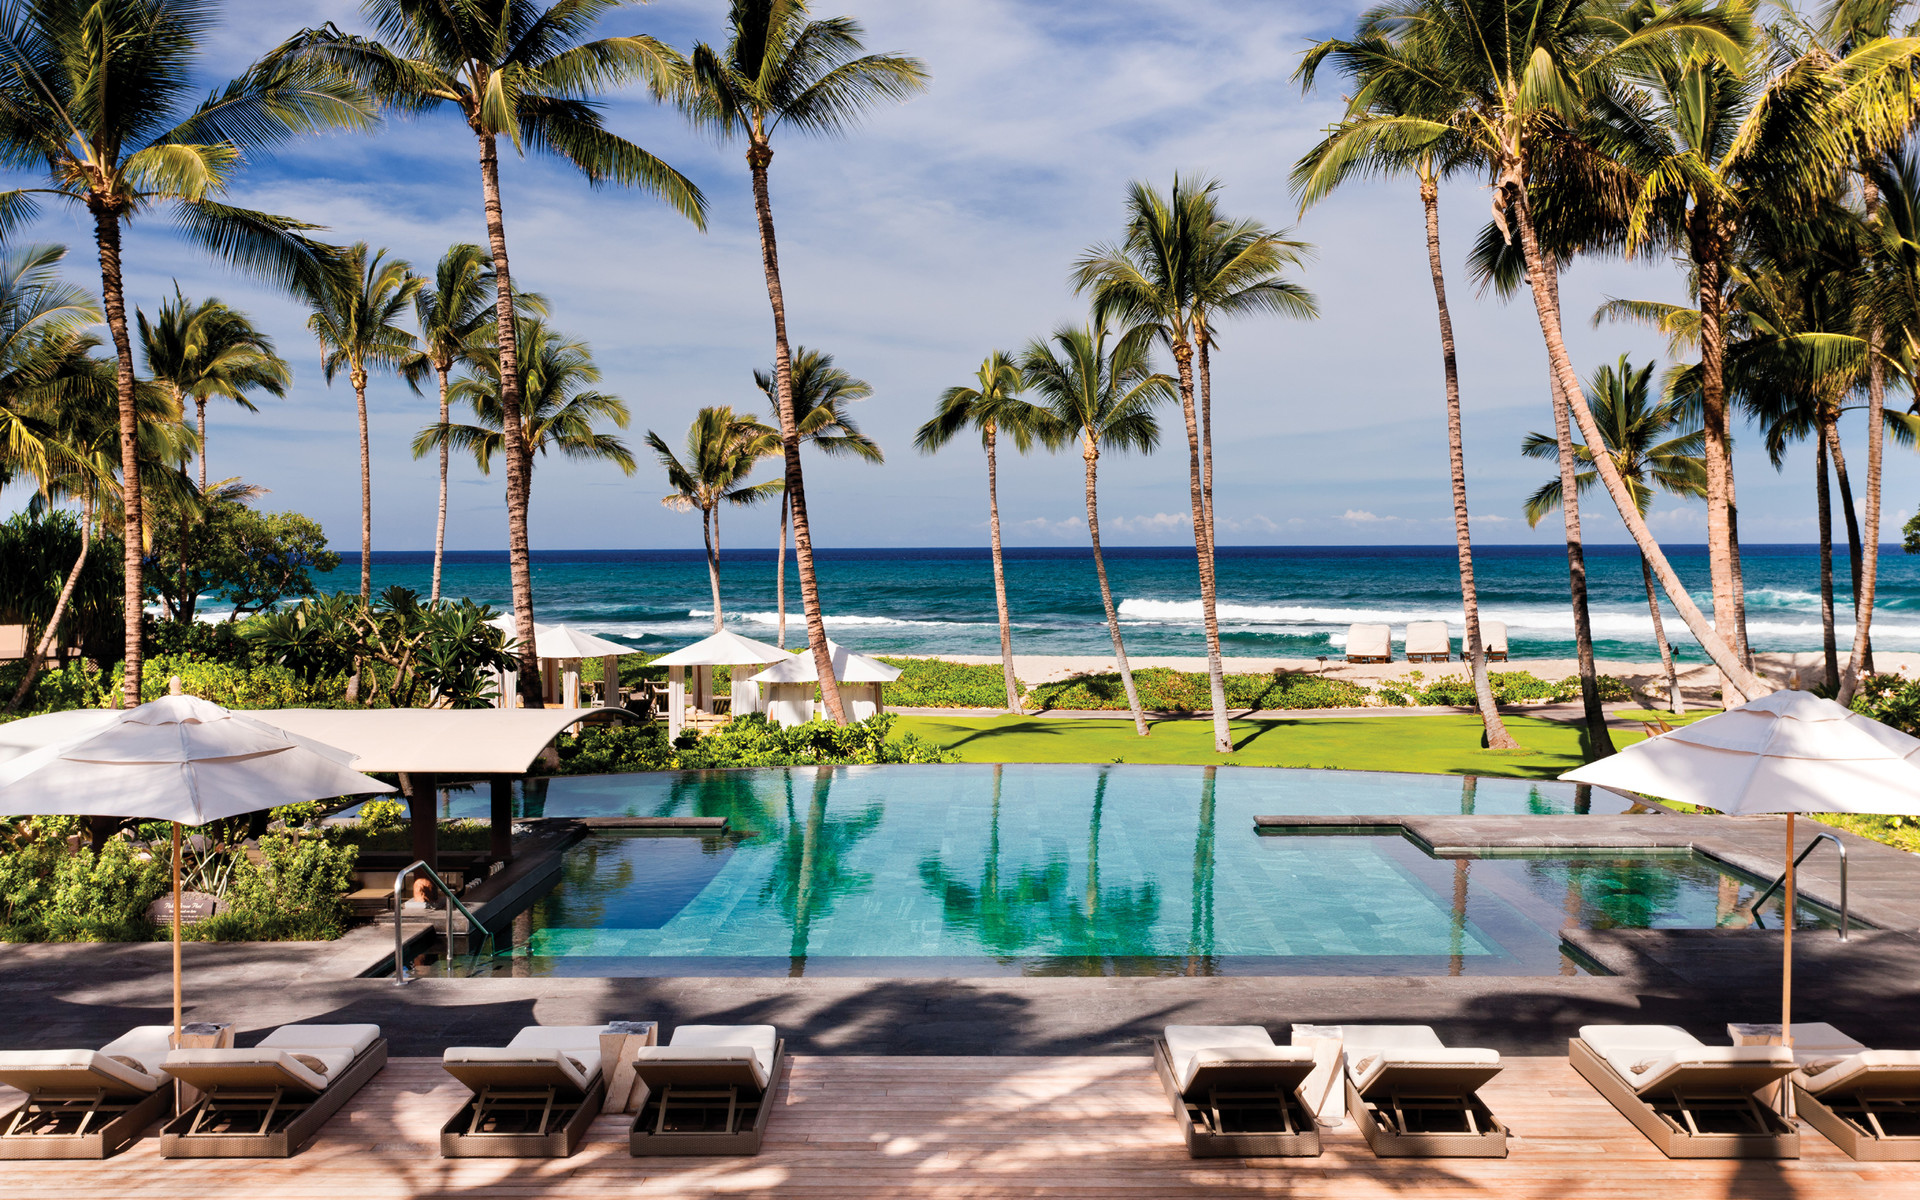 Best Family Beach Hotels: No. 5 (tie) Four Seasons Resort Hualalai, HI